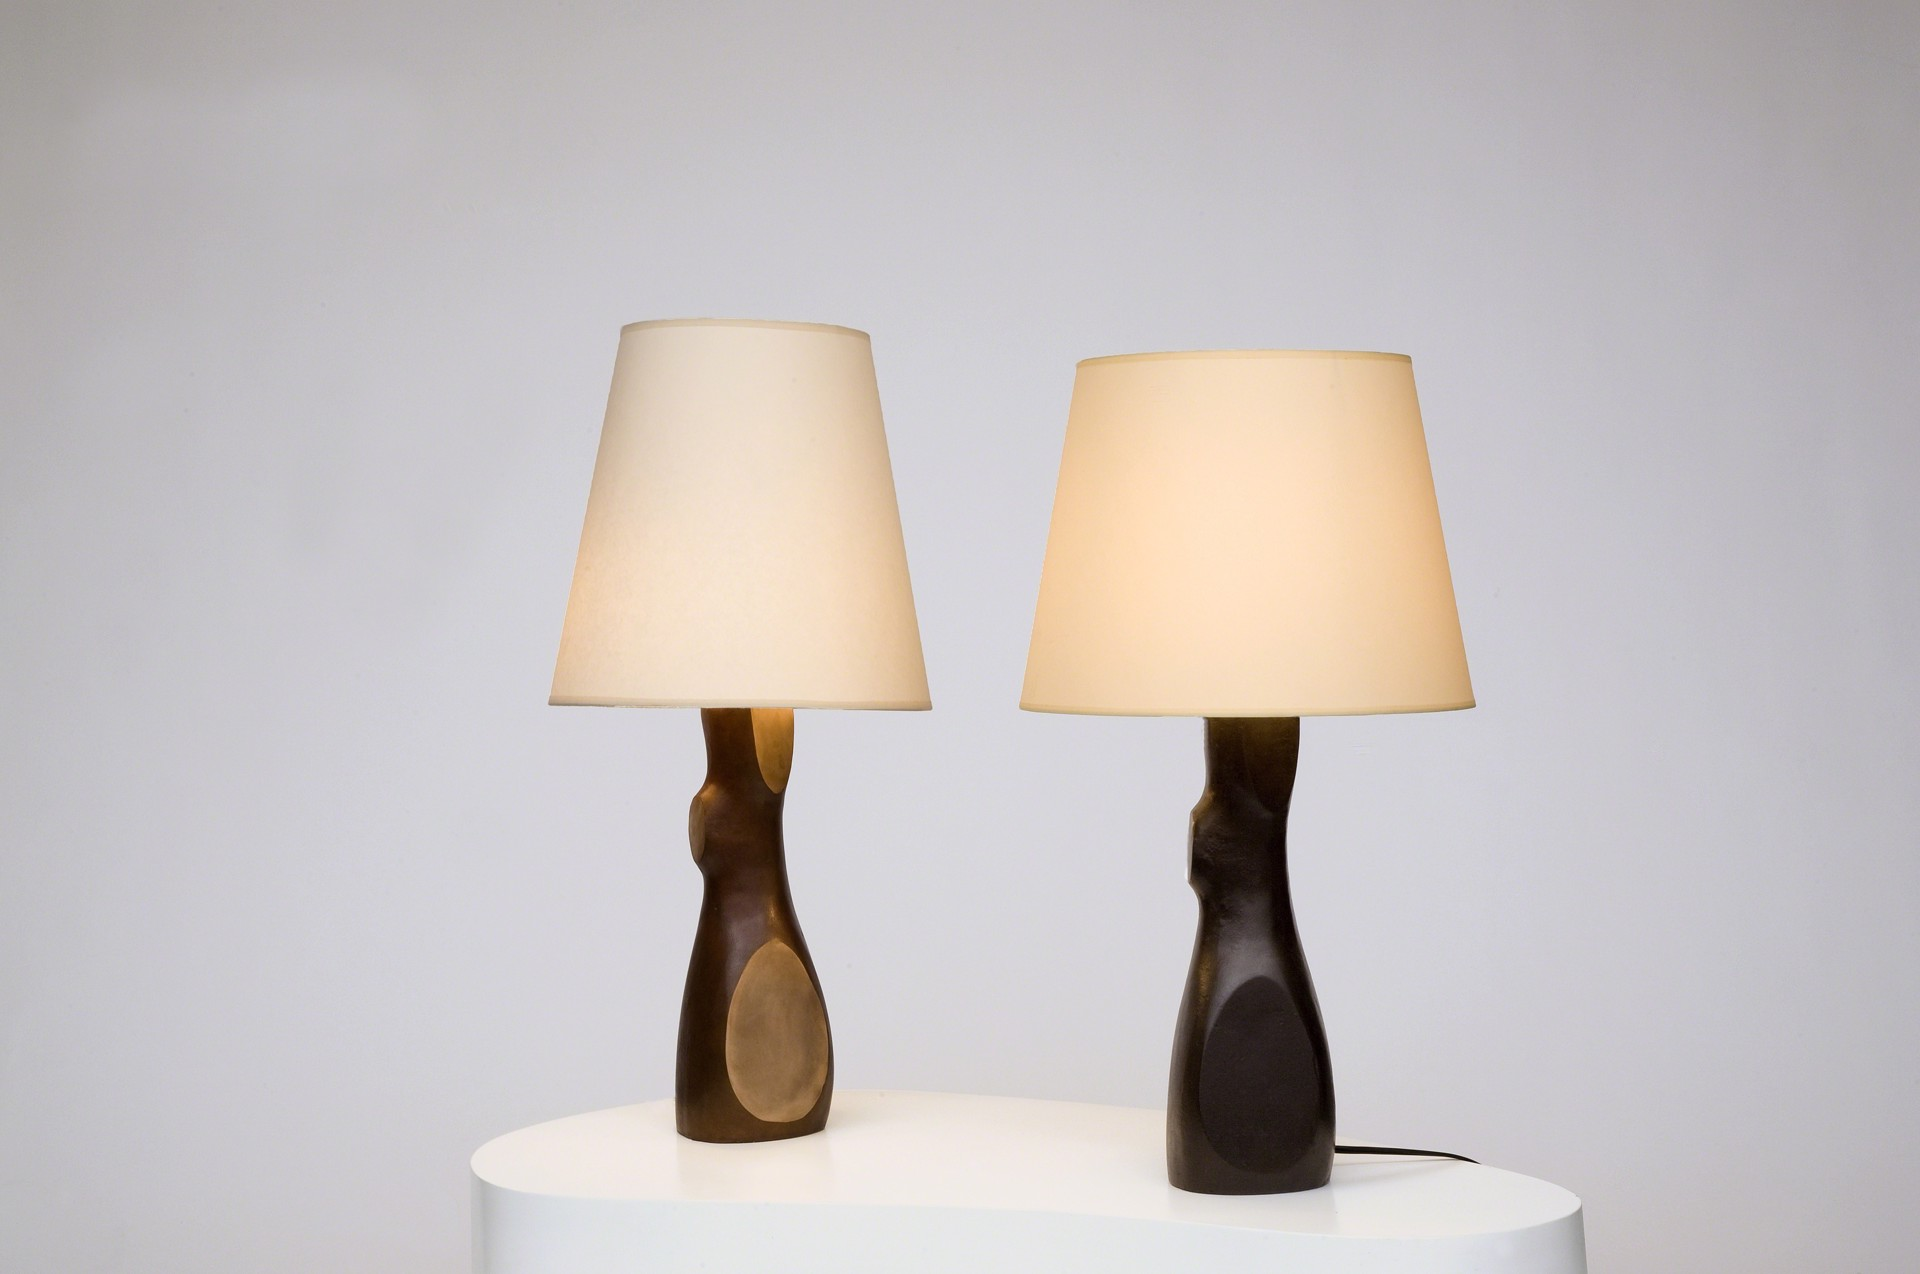 """Togo"" Lamps with natural bronze finish by Jacques Jarrige"